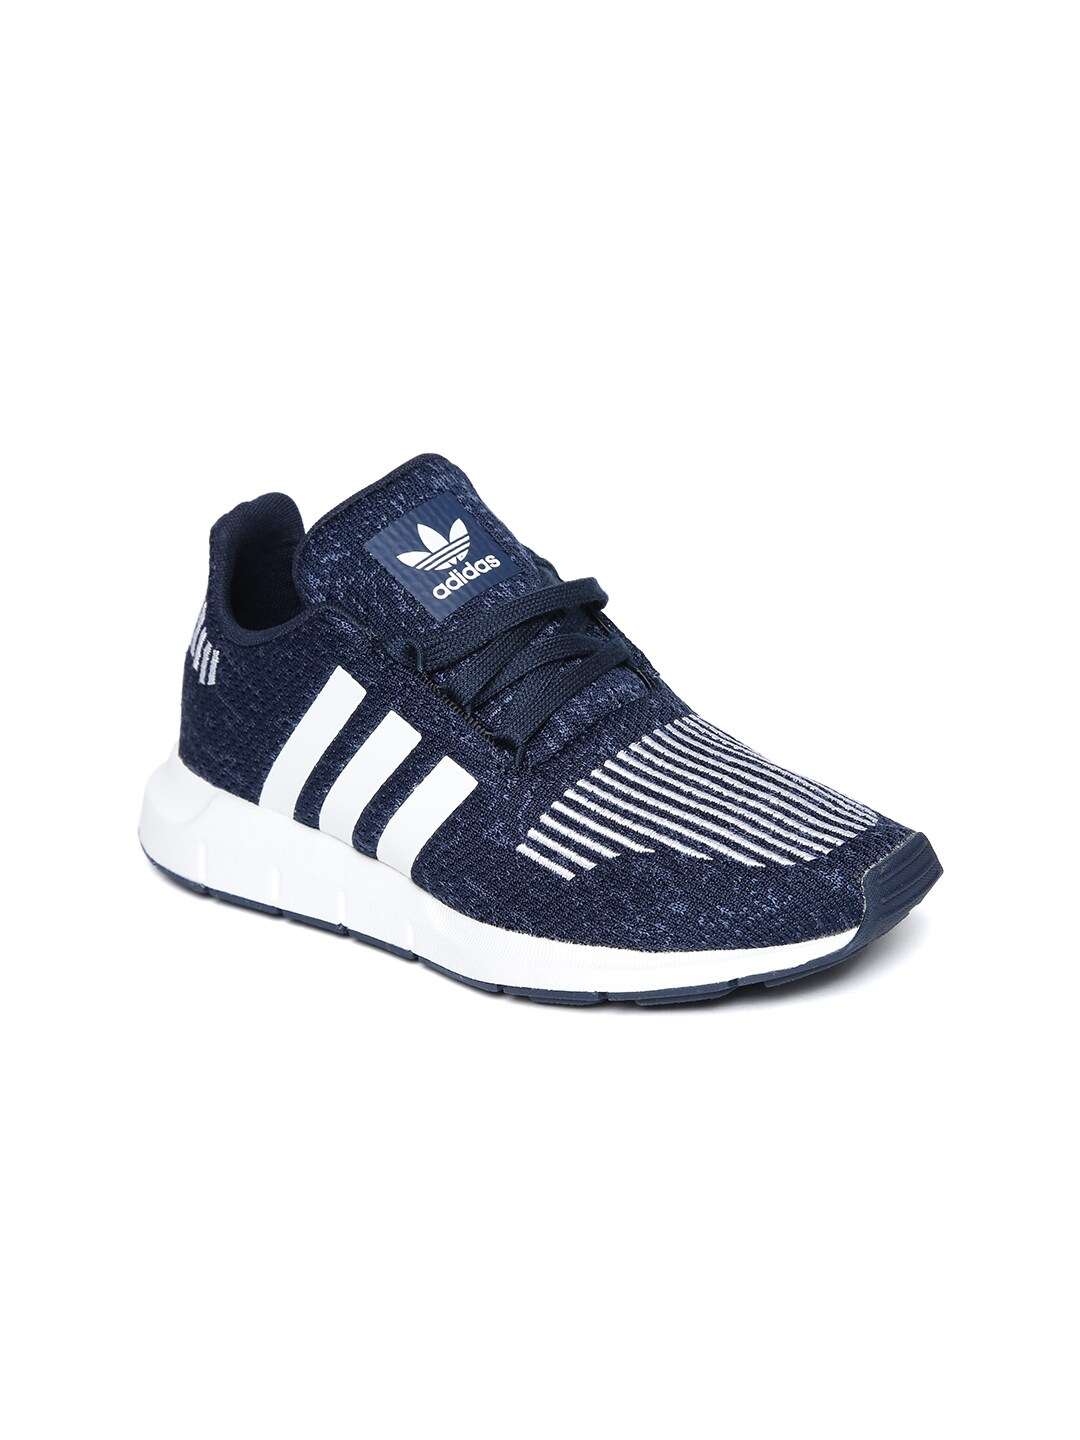 fe48d49b6 Swift Shoes - Buy Swift Shoes online in India